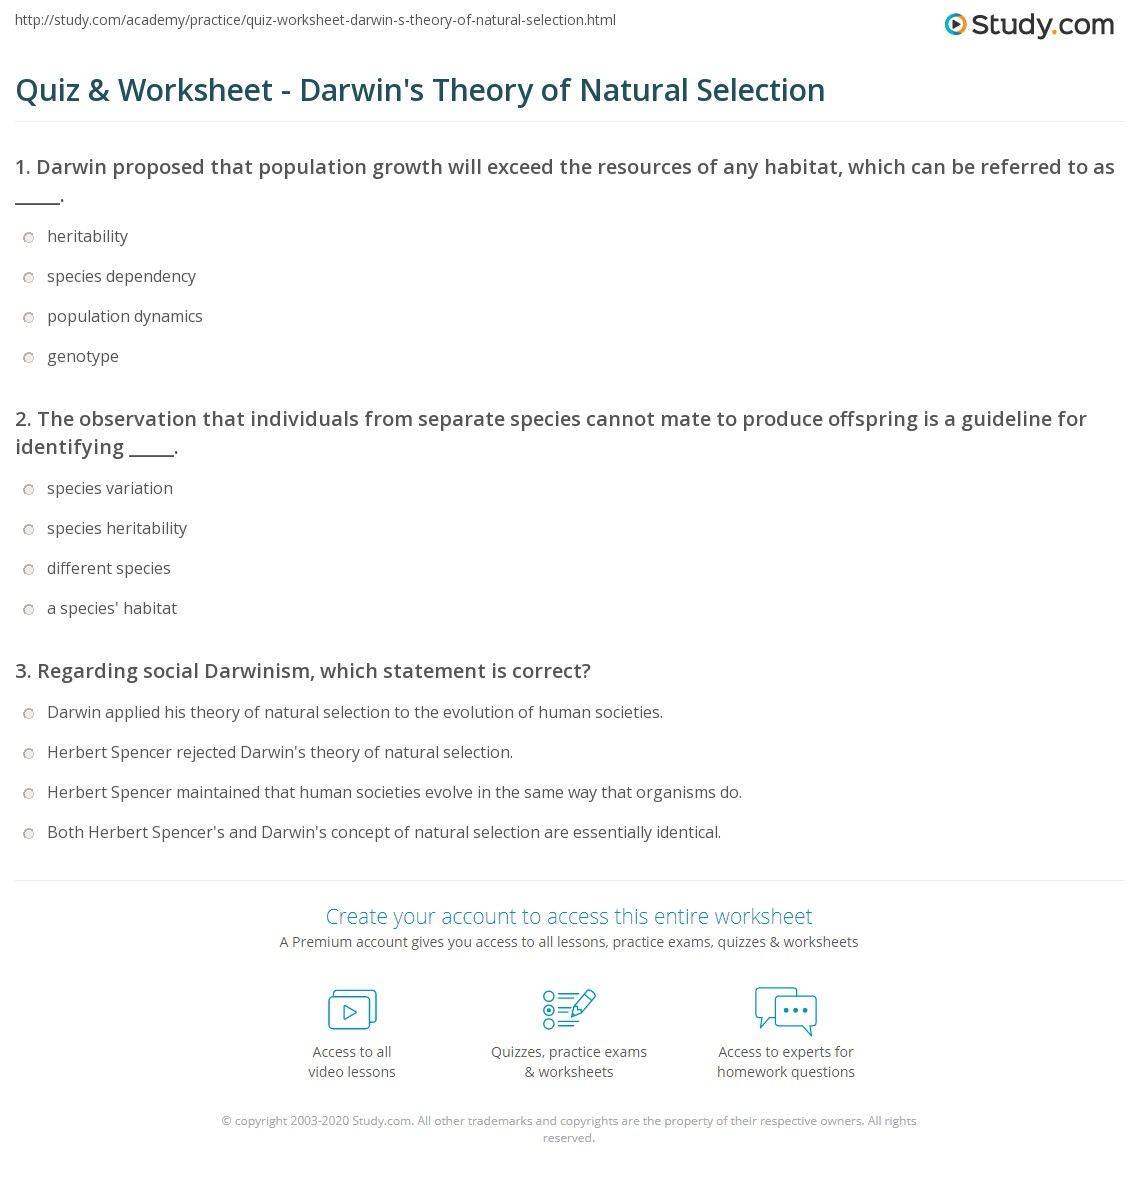 worksheet Genetics Basics Worksheet genetics basics worksheet templates and worksheets 2000 answers worksheets